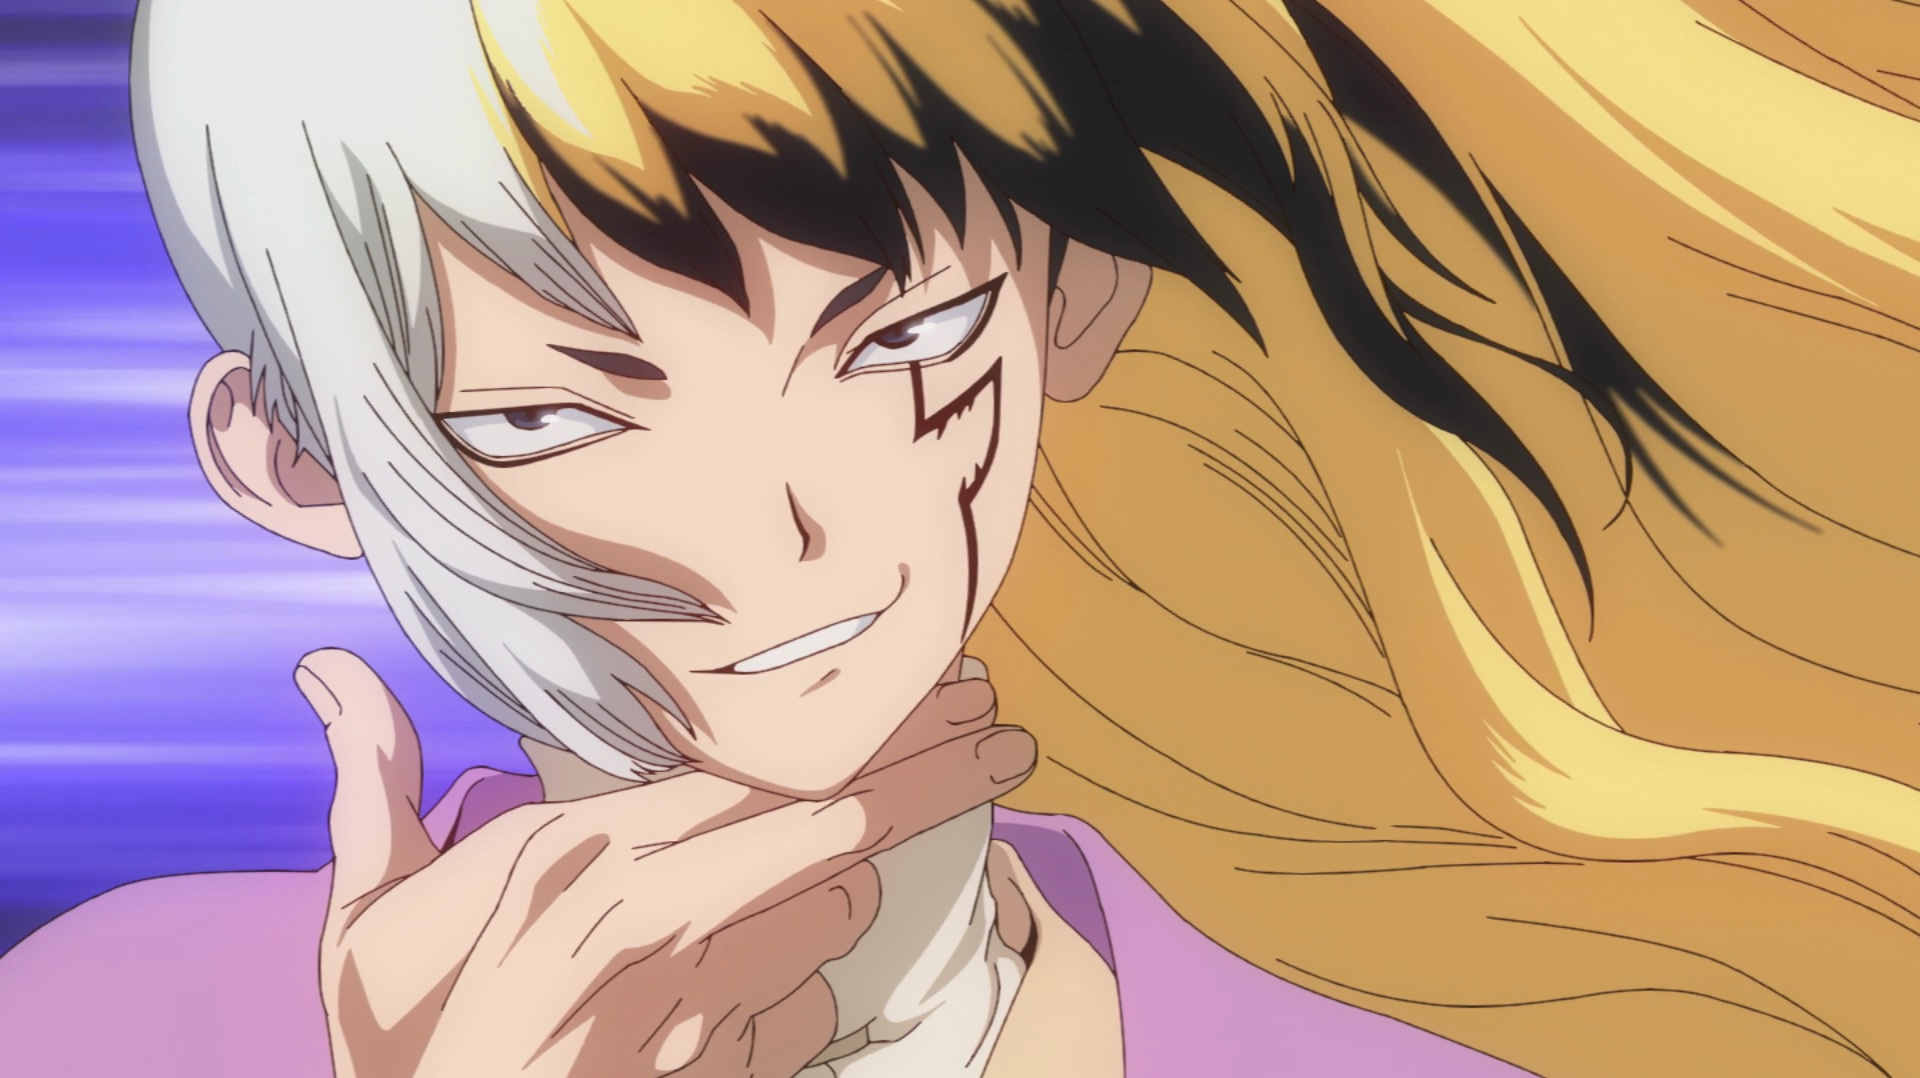 Featured image for Dr. Stone Season 2 Episode 7 – The Puzzle of Ukyo